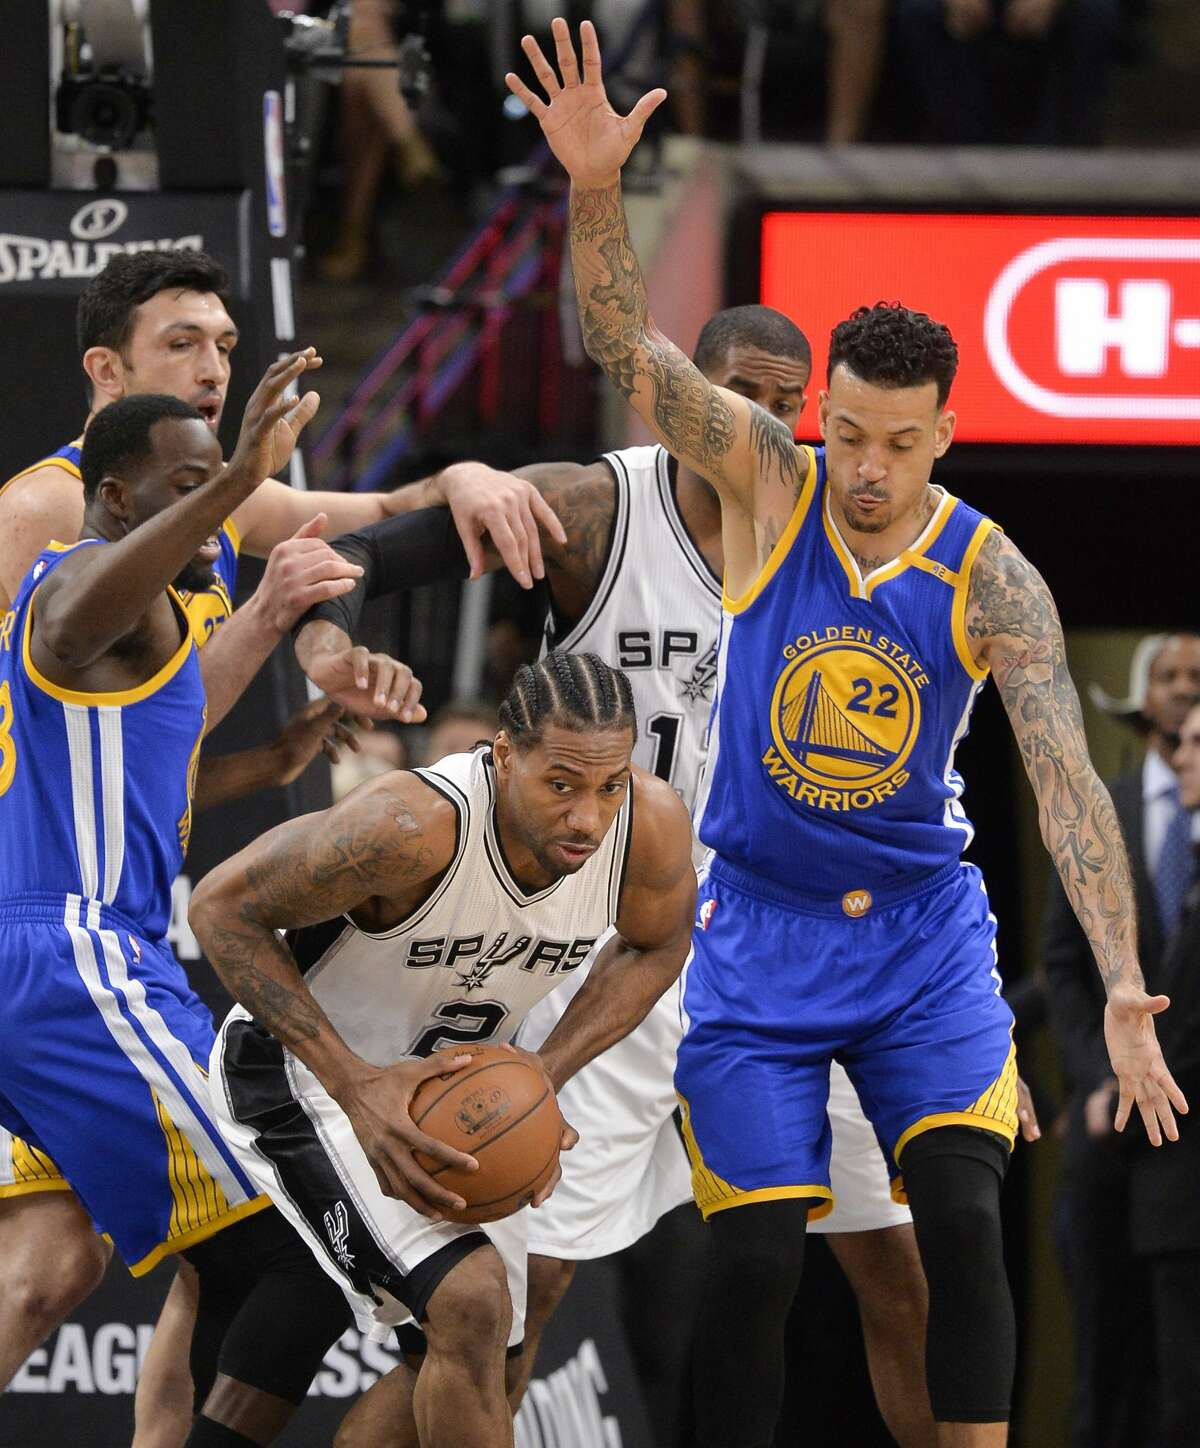 San Antonio Spurs forward Kawhi Leonard (2) looks to pass as he is defended by Golden State Warriors' Matt Barnes (22) and Draymond Green, left, during the first half of an NBA basketball game, Wednesday, March 29, 2017, in San Antonio. (AP Photo/Darren Abate)